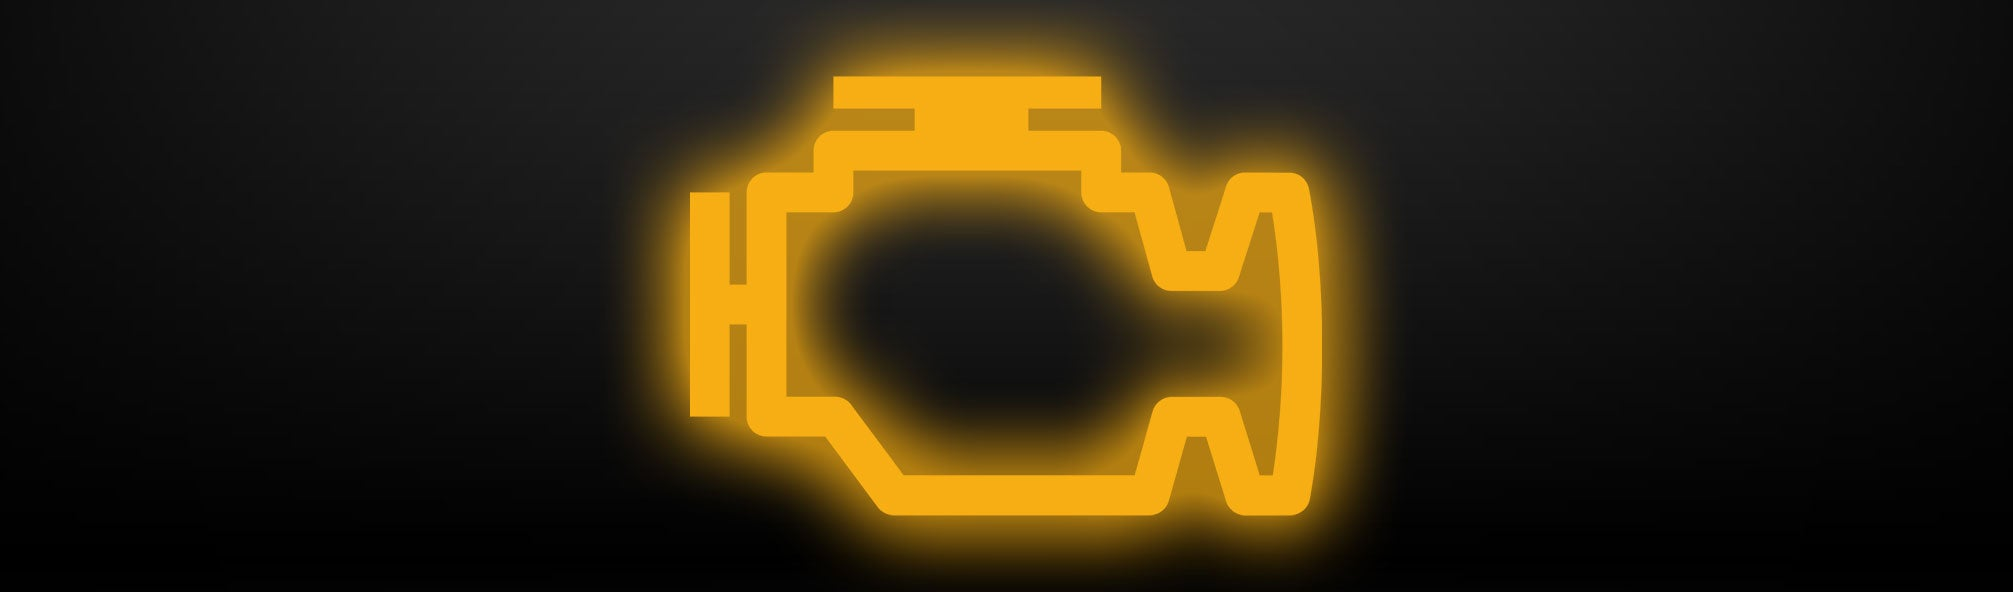 My Check Engine Light Is On | Portsmouth Used Car Center